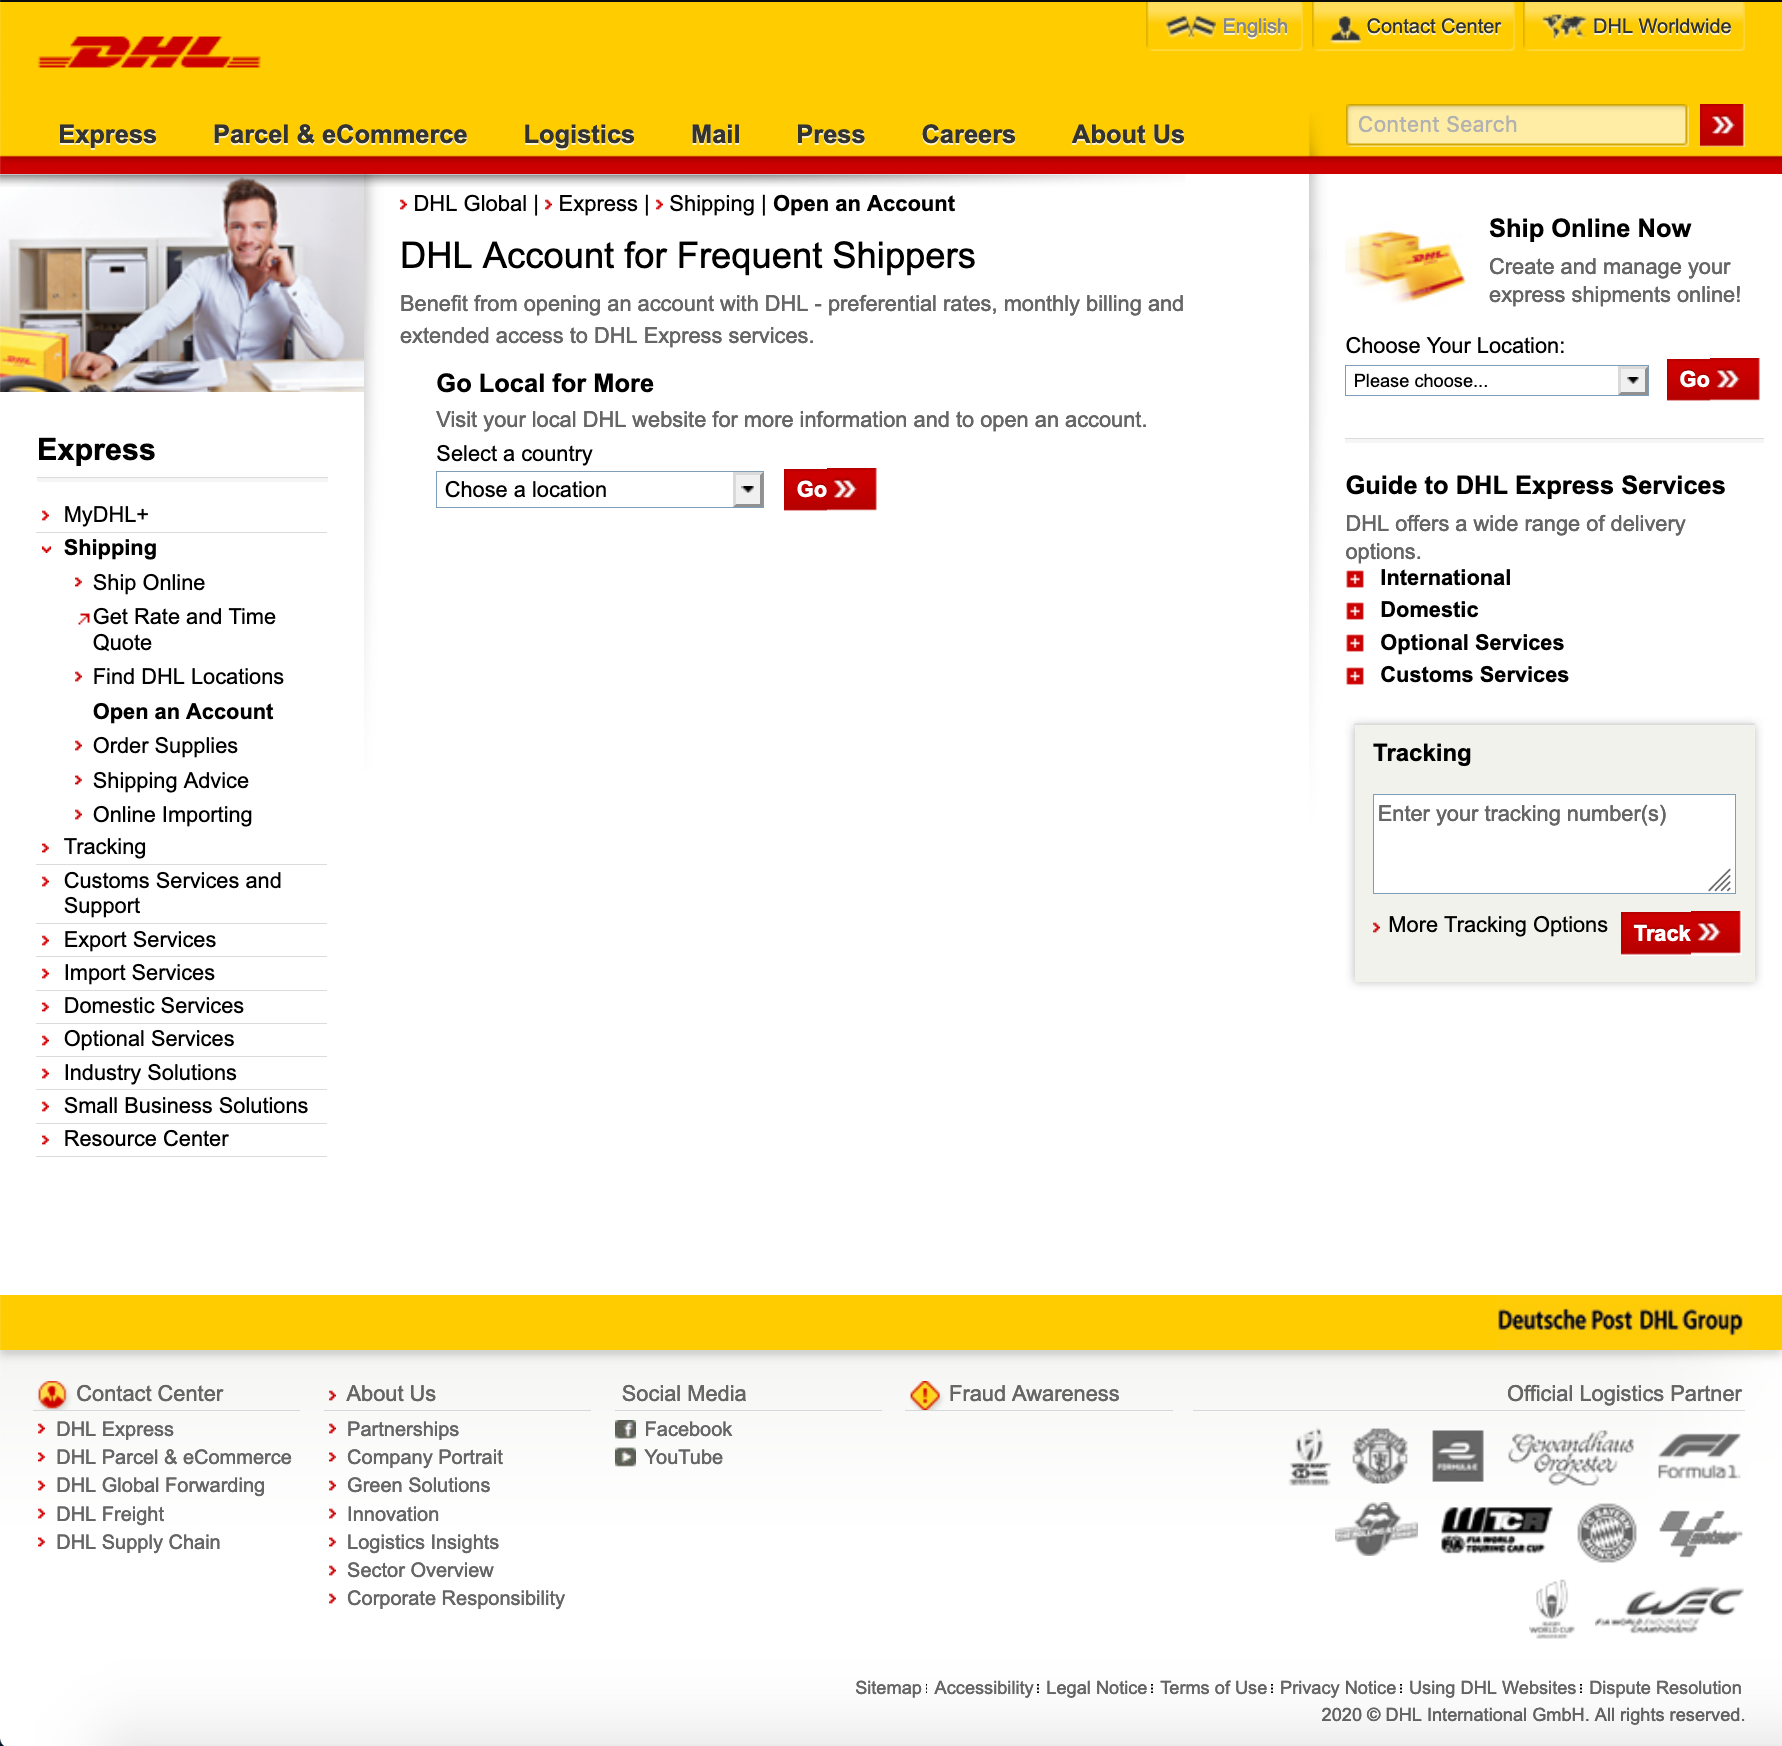 DHL Express - How to create an account? - DHL Express site